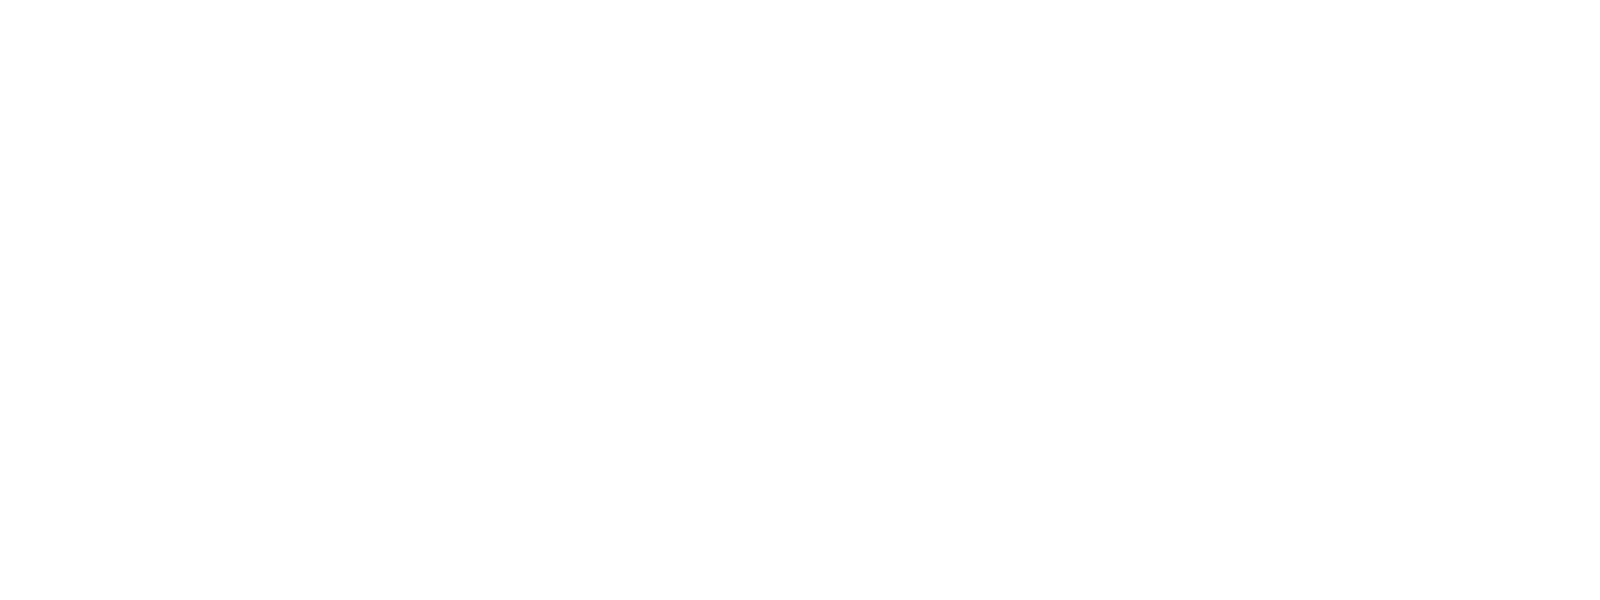 Karmasangsthan | Karmakshetra - Weekly Paper PDF Download For Free